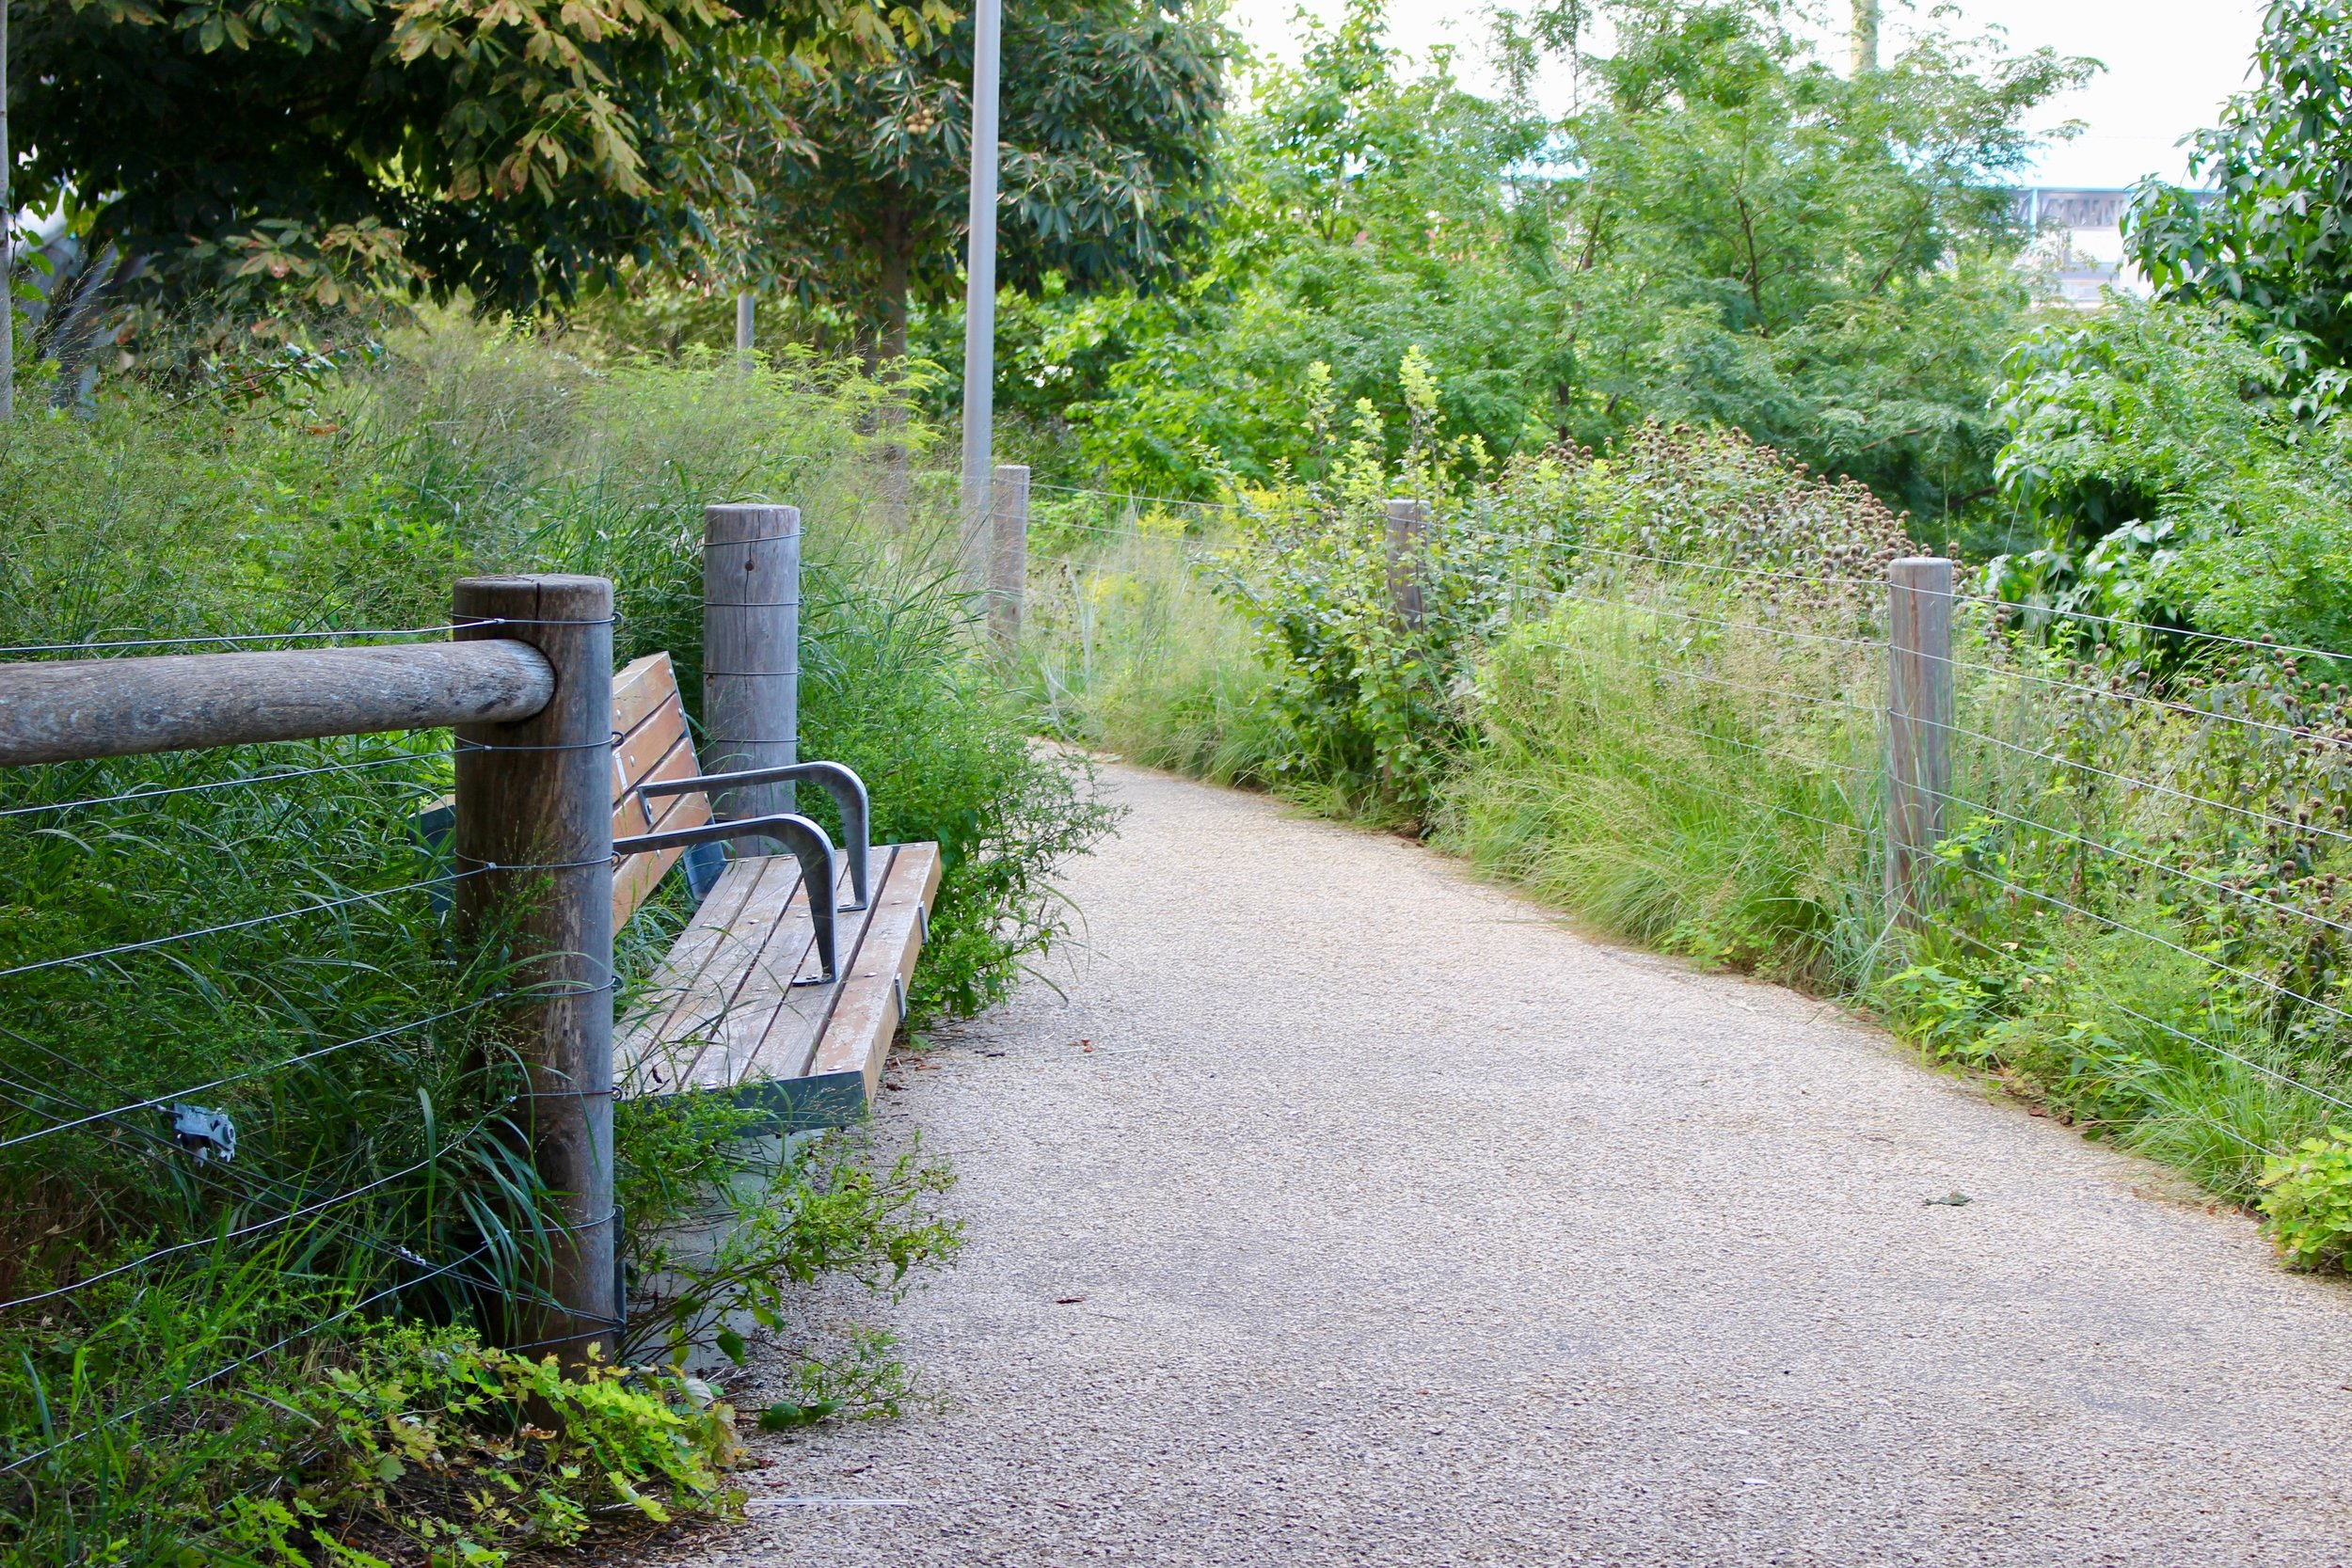 """The bucolic, natural walking path through Brooklyn Bridge Park. Your energy drops and relaxes amidst these surroundings, and it's like, """"Am I really in...Brooklyn?"""""""